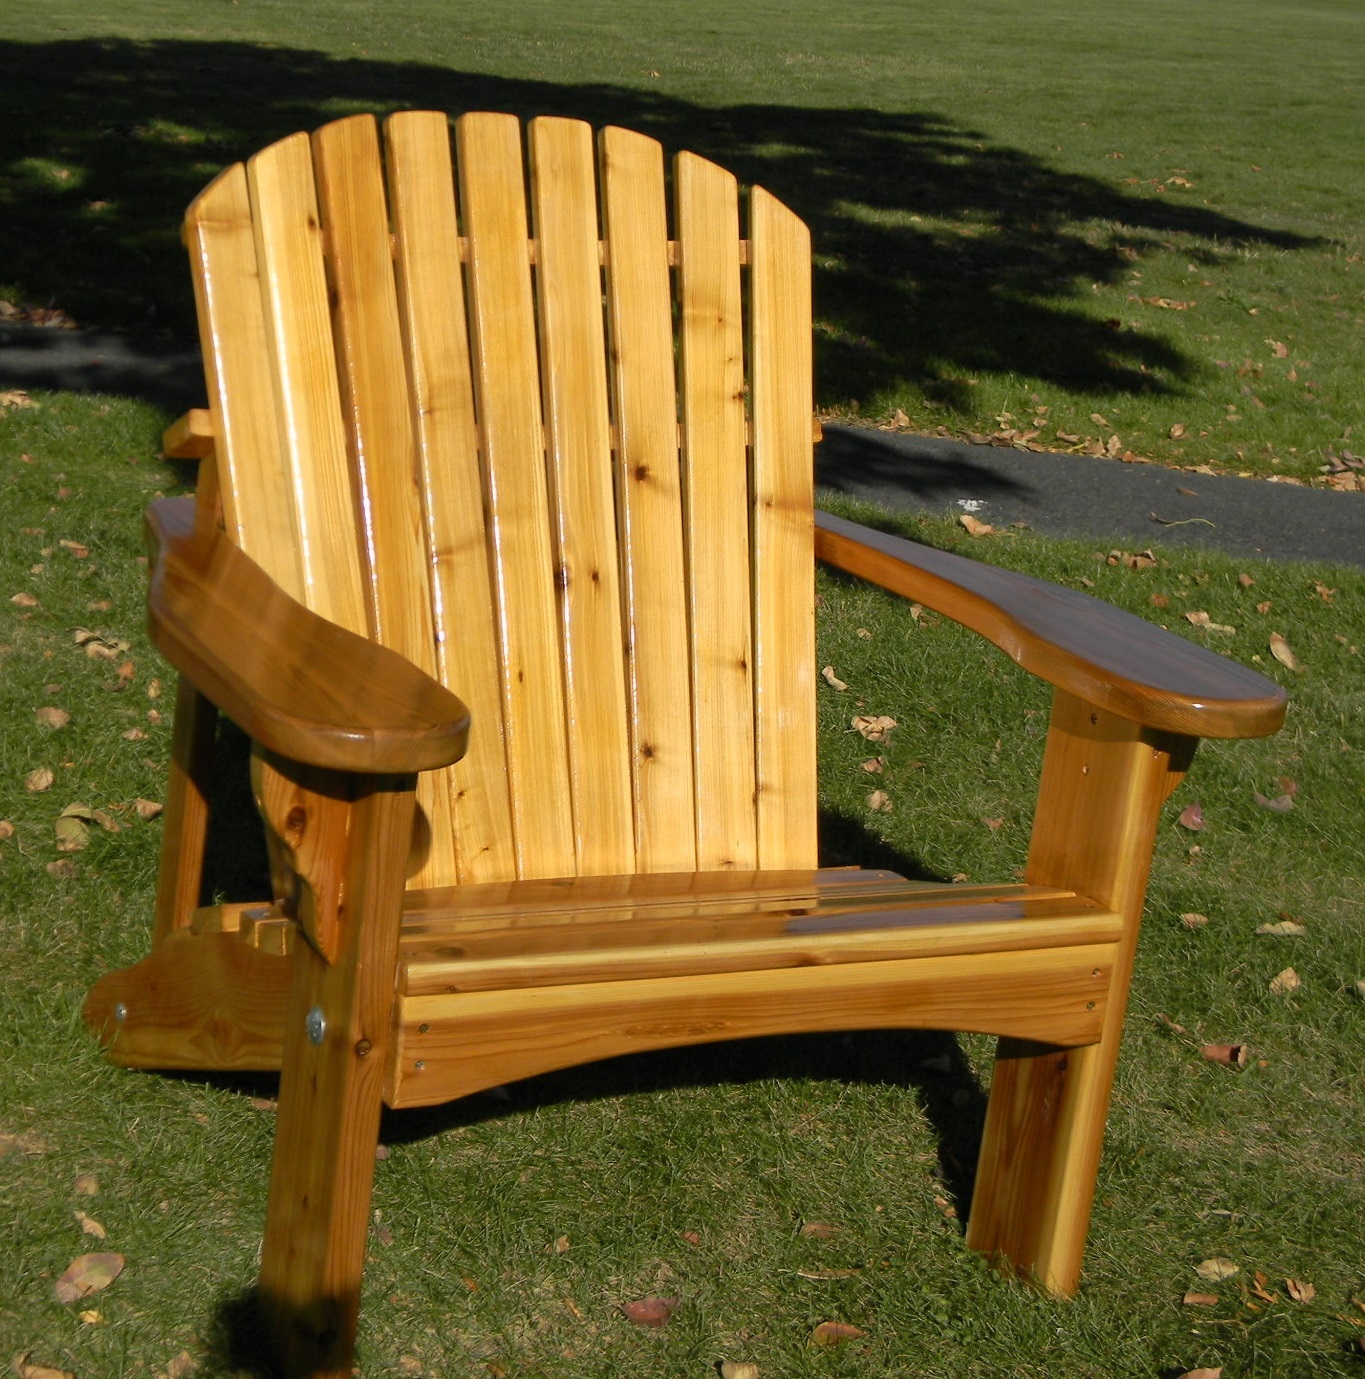 Regal Oversized Adirondack Chair Hand Crafted in Western Red Cedar